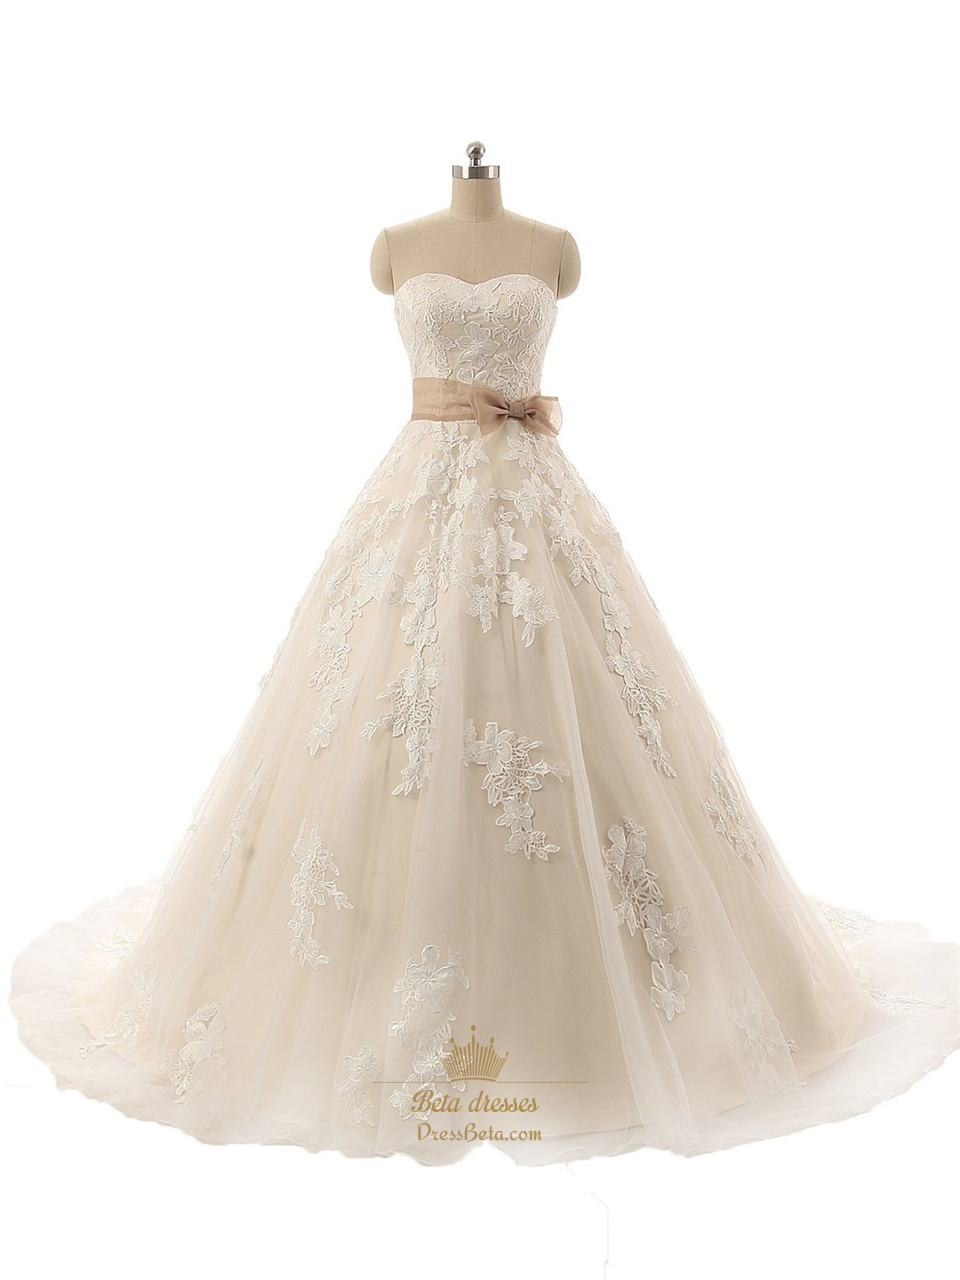 Champagne Strapless Floral Applique Tulle Overlay Wedding